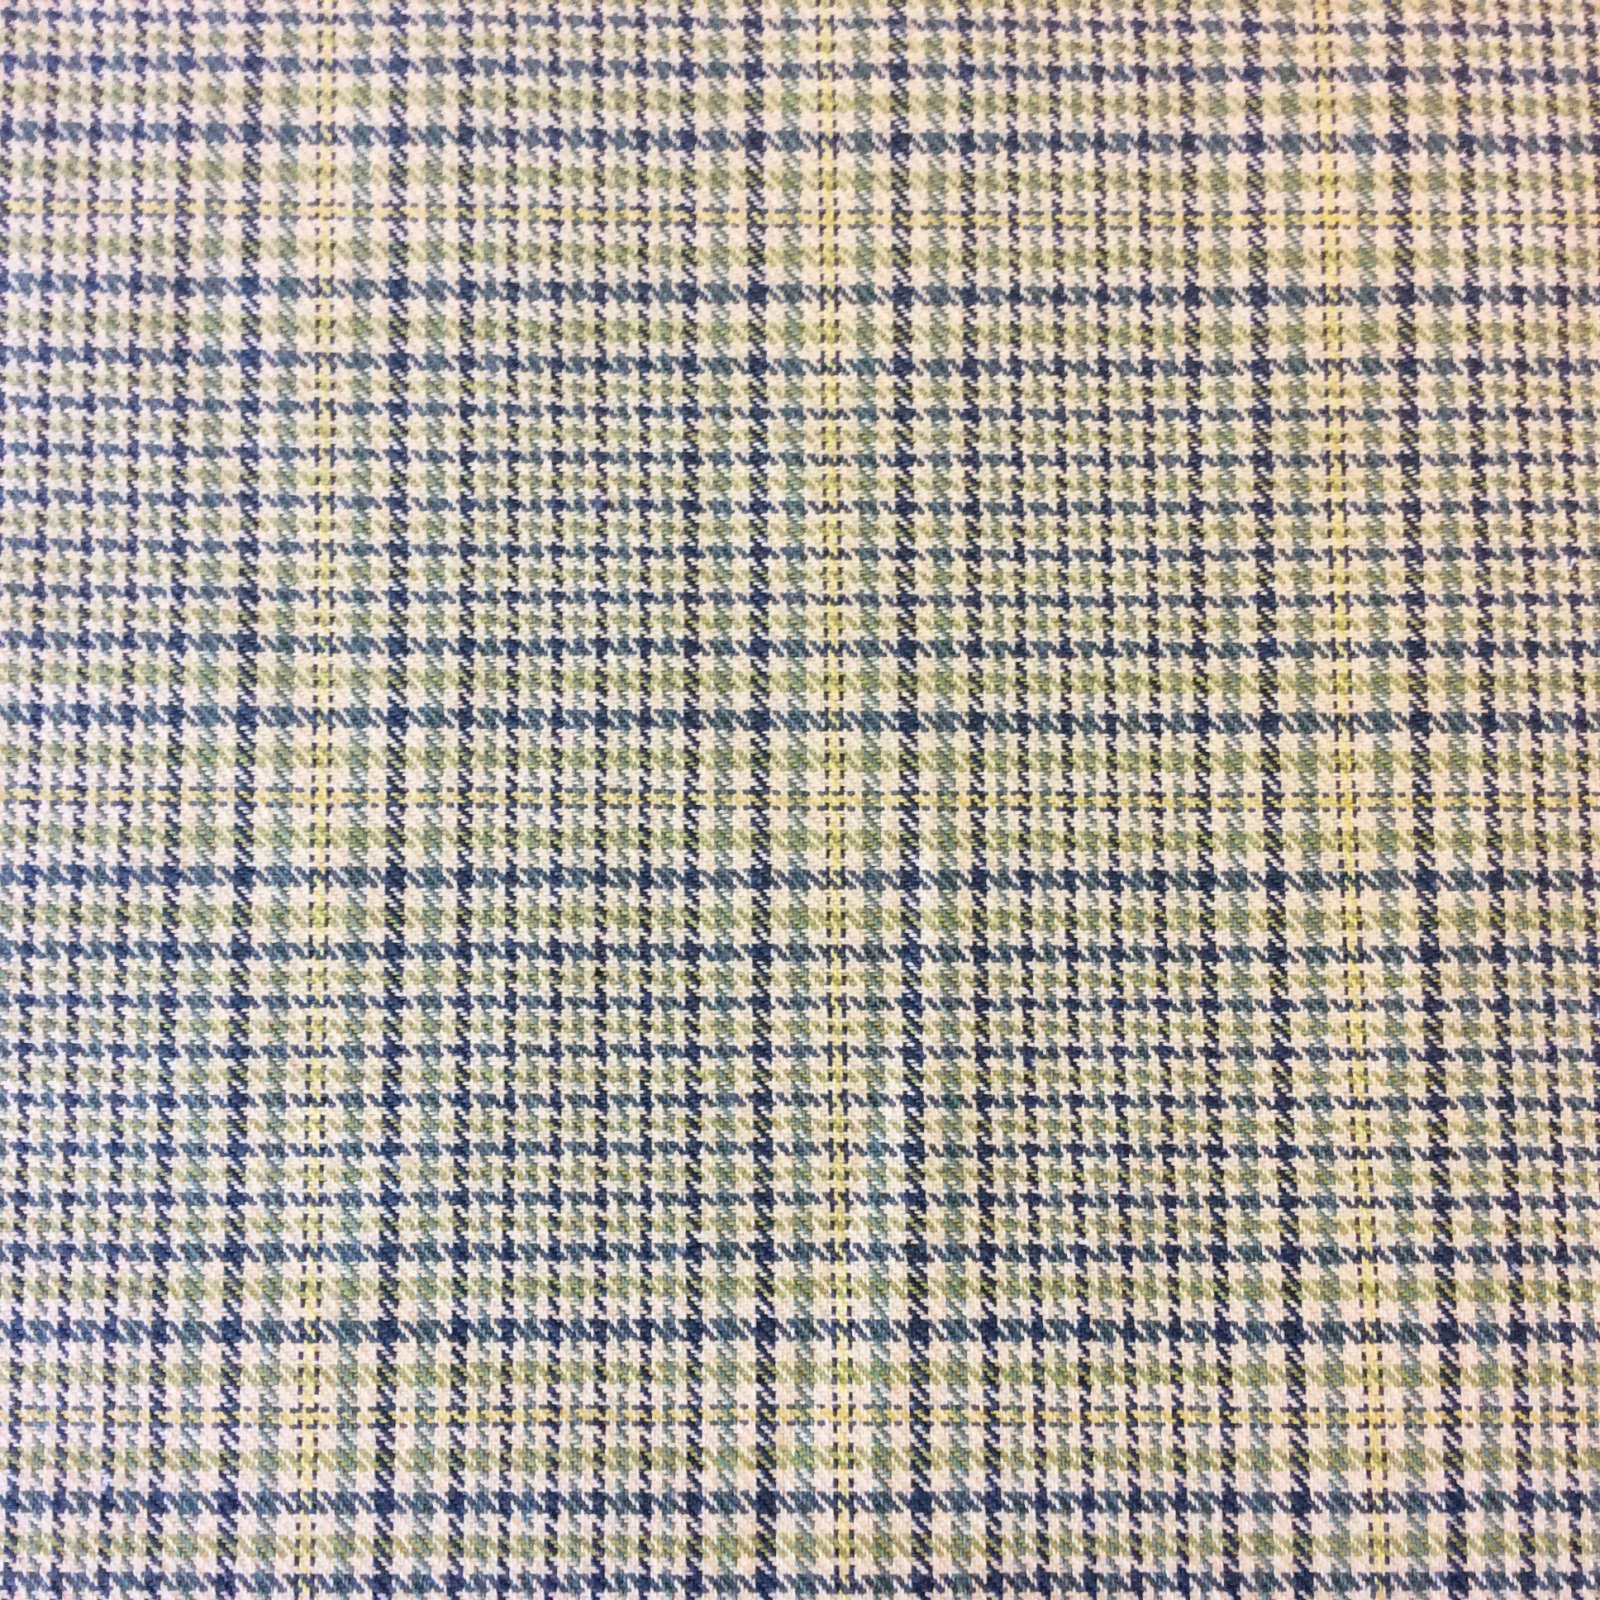 Plaid Classic Lagoon Houndstooth Plaid Geo Grid Upholstery Home